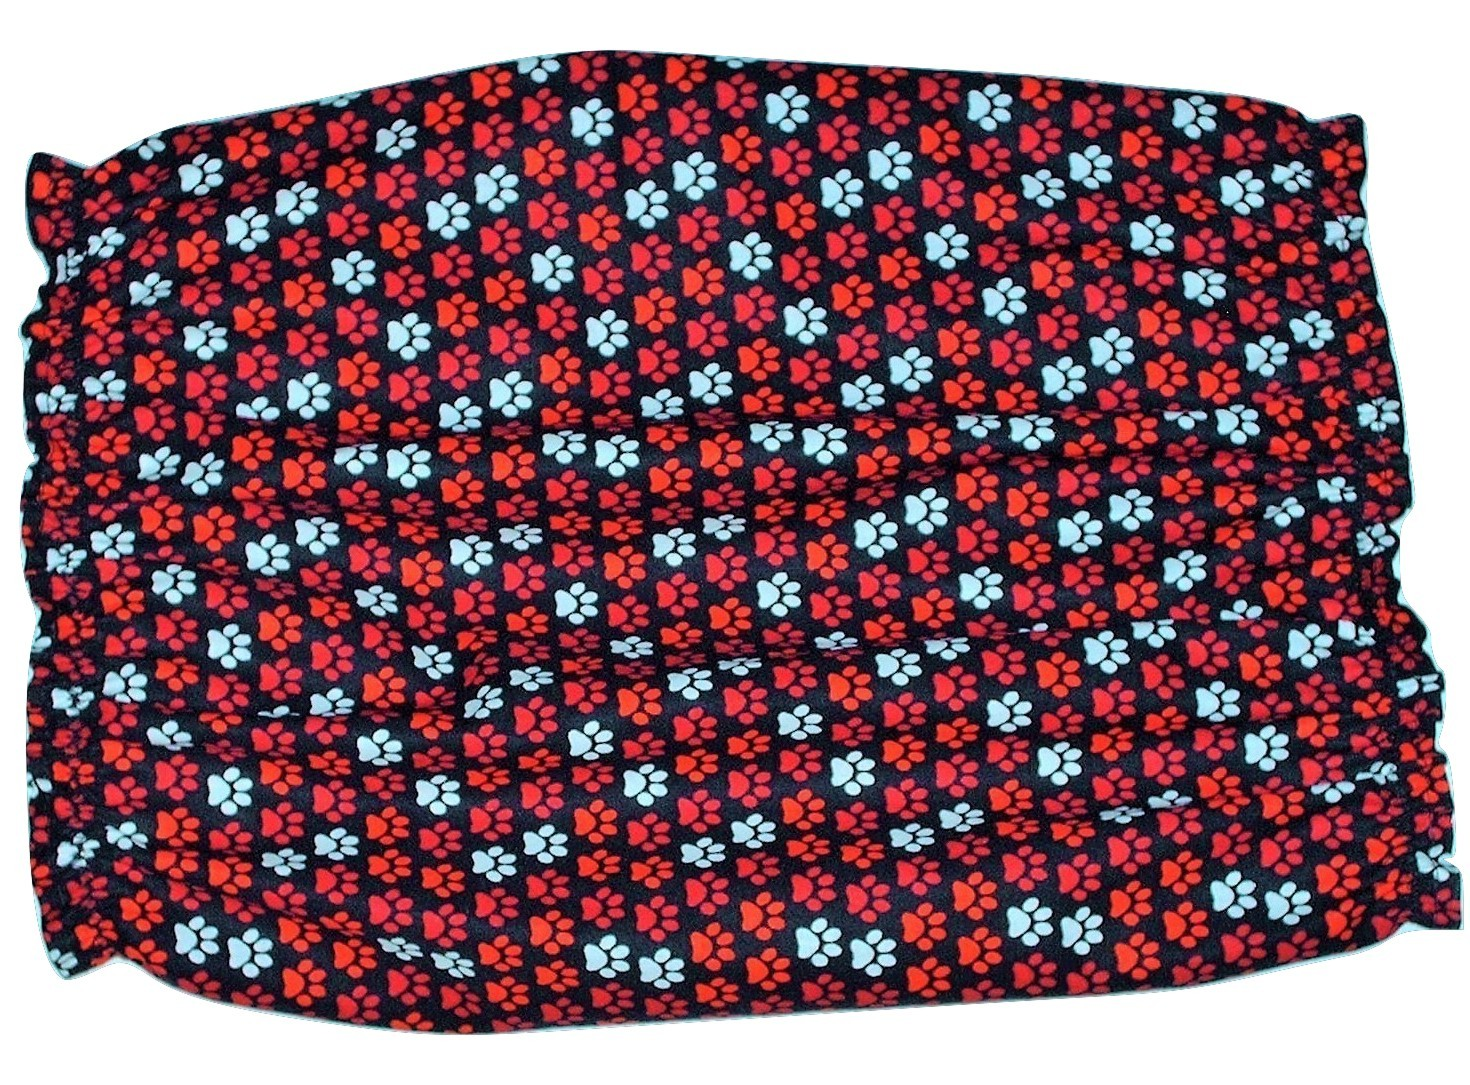 Black with Red White Paw Prints Cotton Dog Snood by Howlin Hounds Puppy REGULAR